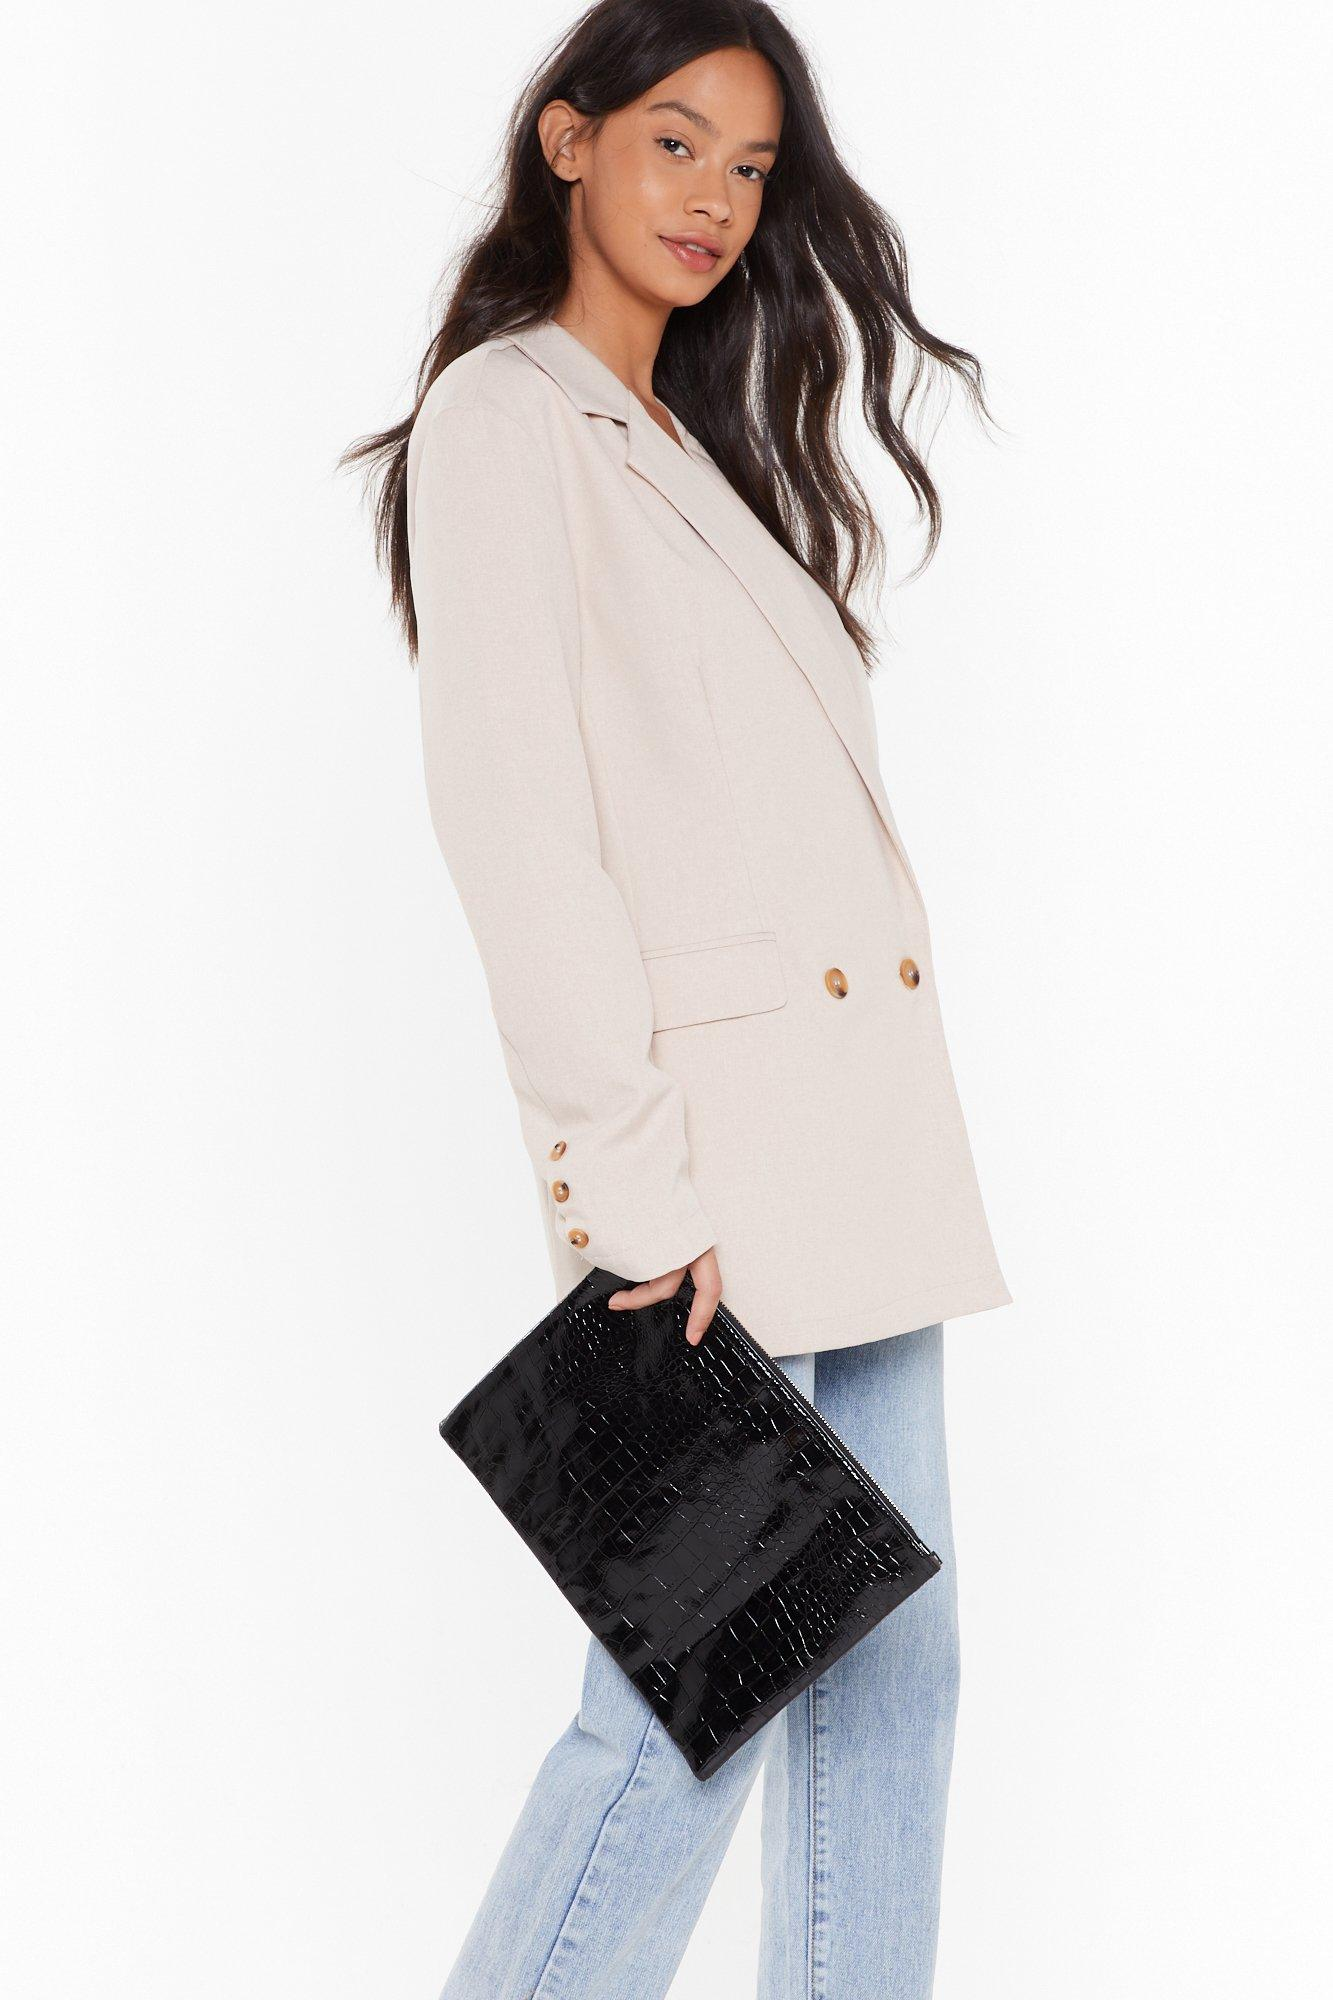 Image of WANT Essentials in Hand Pouch Clutch Bag